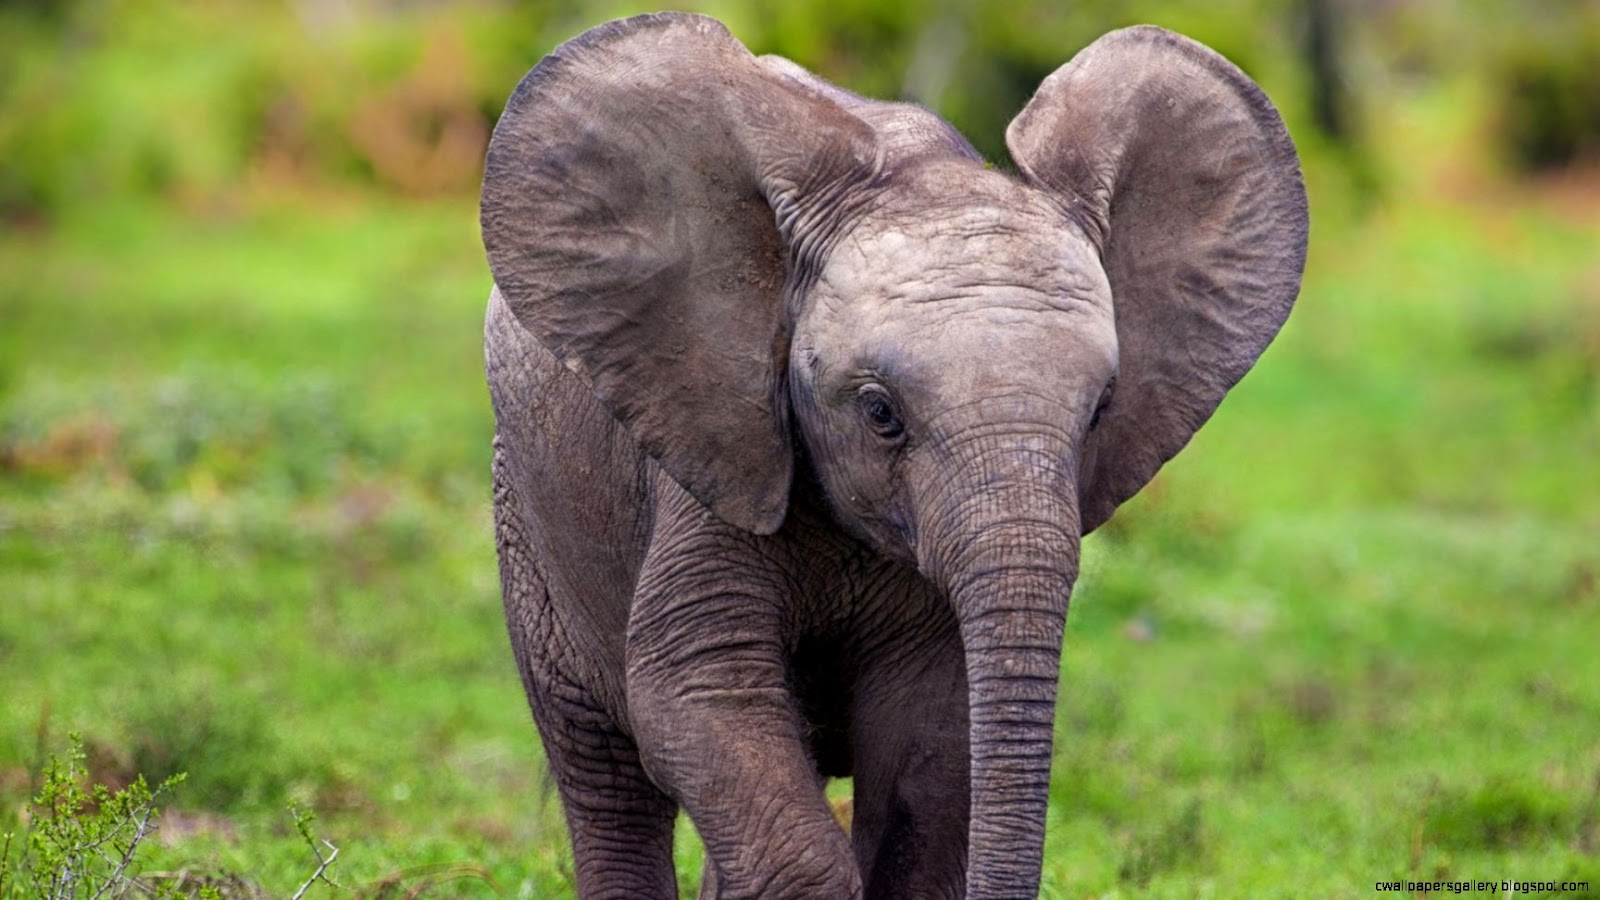 Baby elephant wallpaper for iphone wallpapers gallery - Elephant background iphone ...